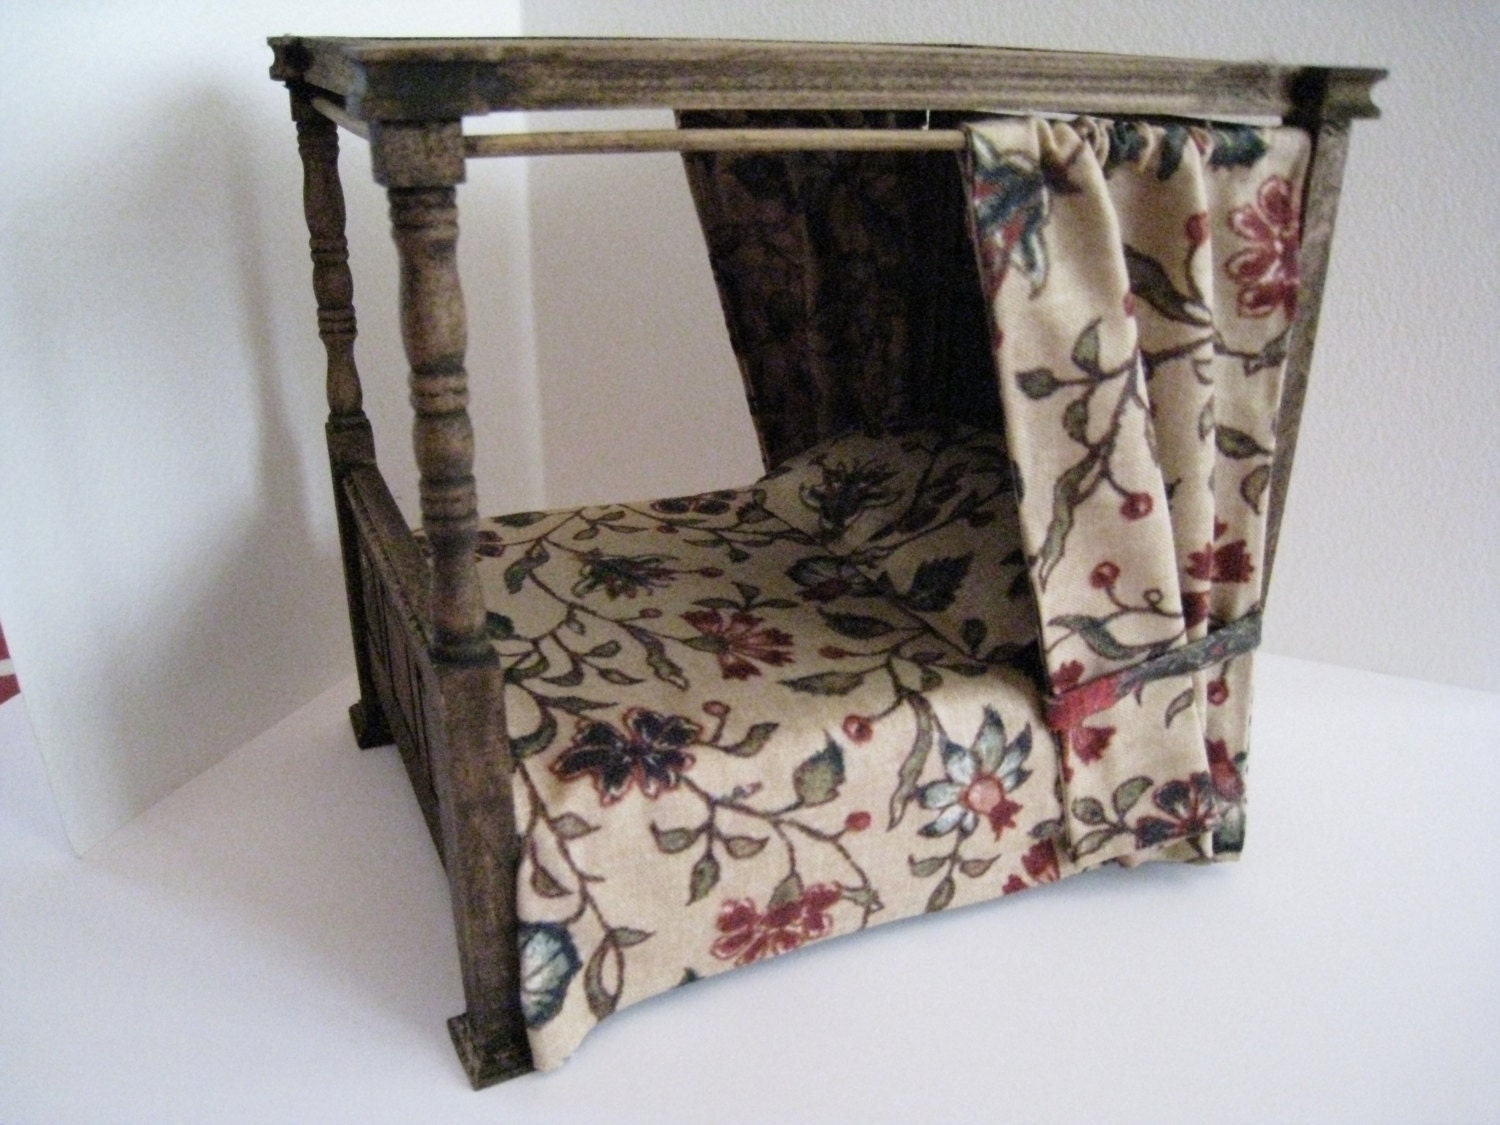 5 Reasons Gothic Canopy Bed Is A Waste Of Time